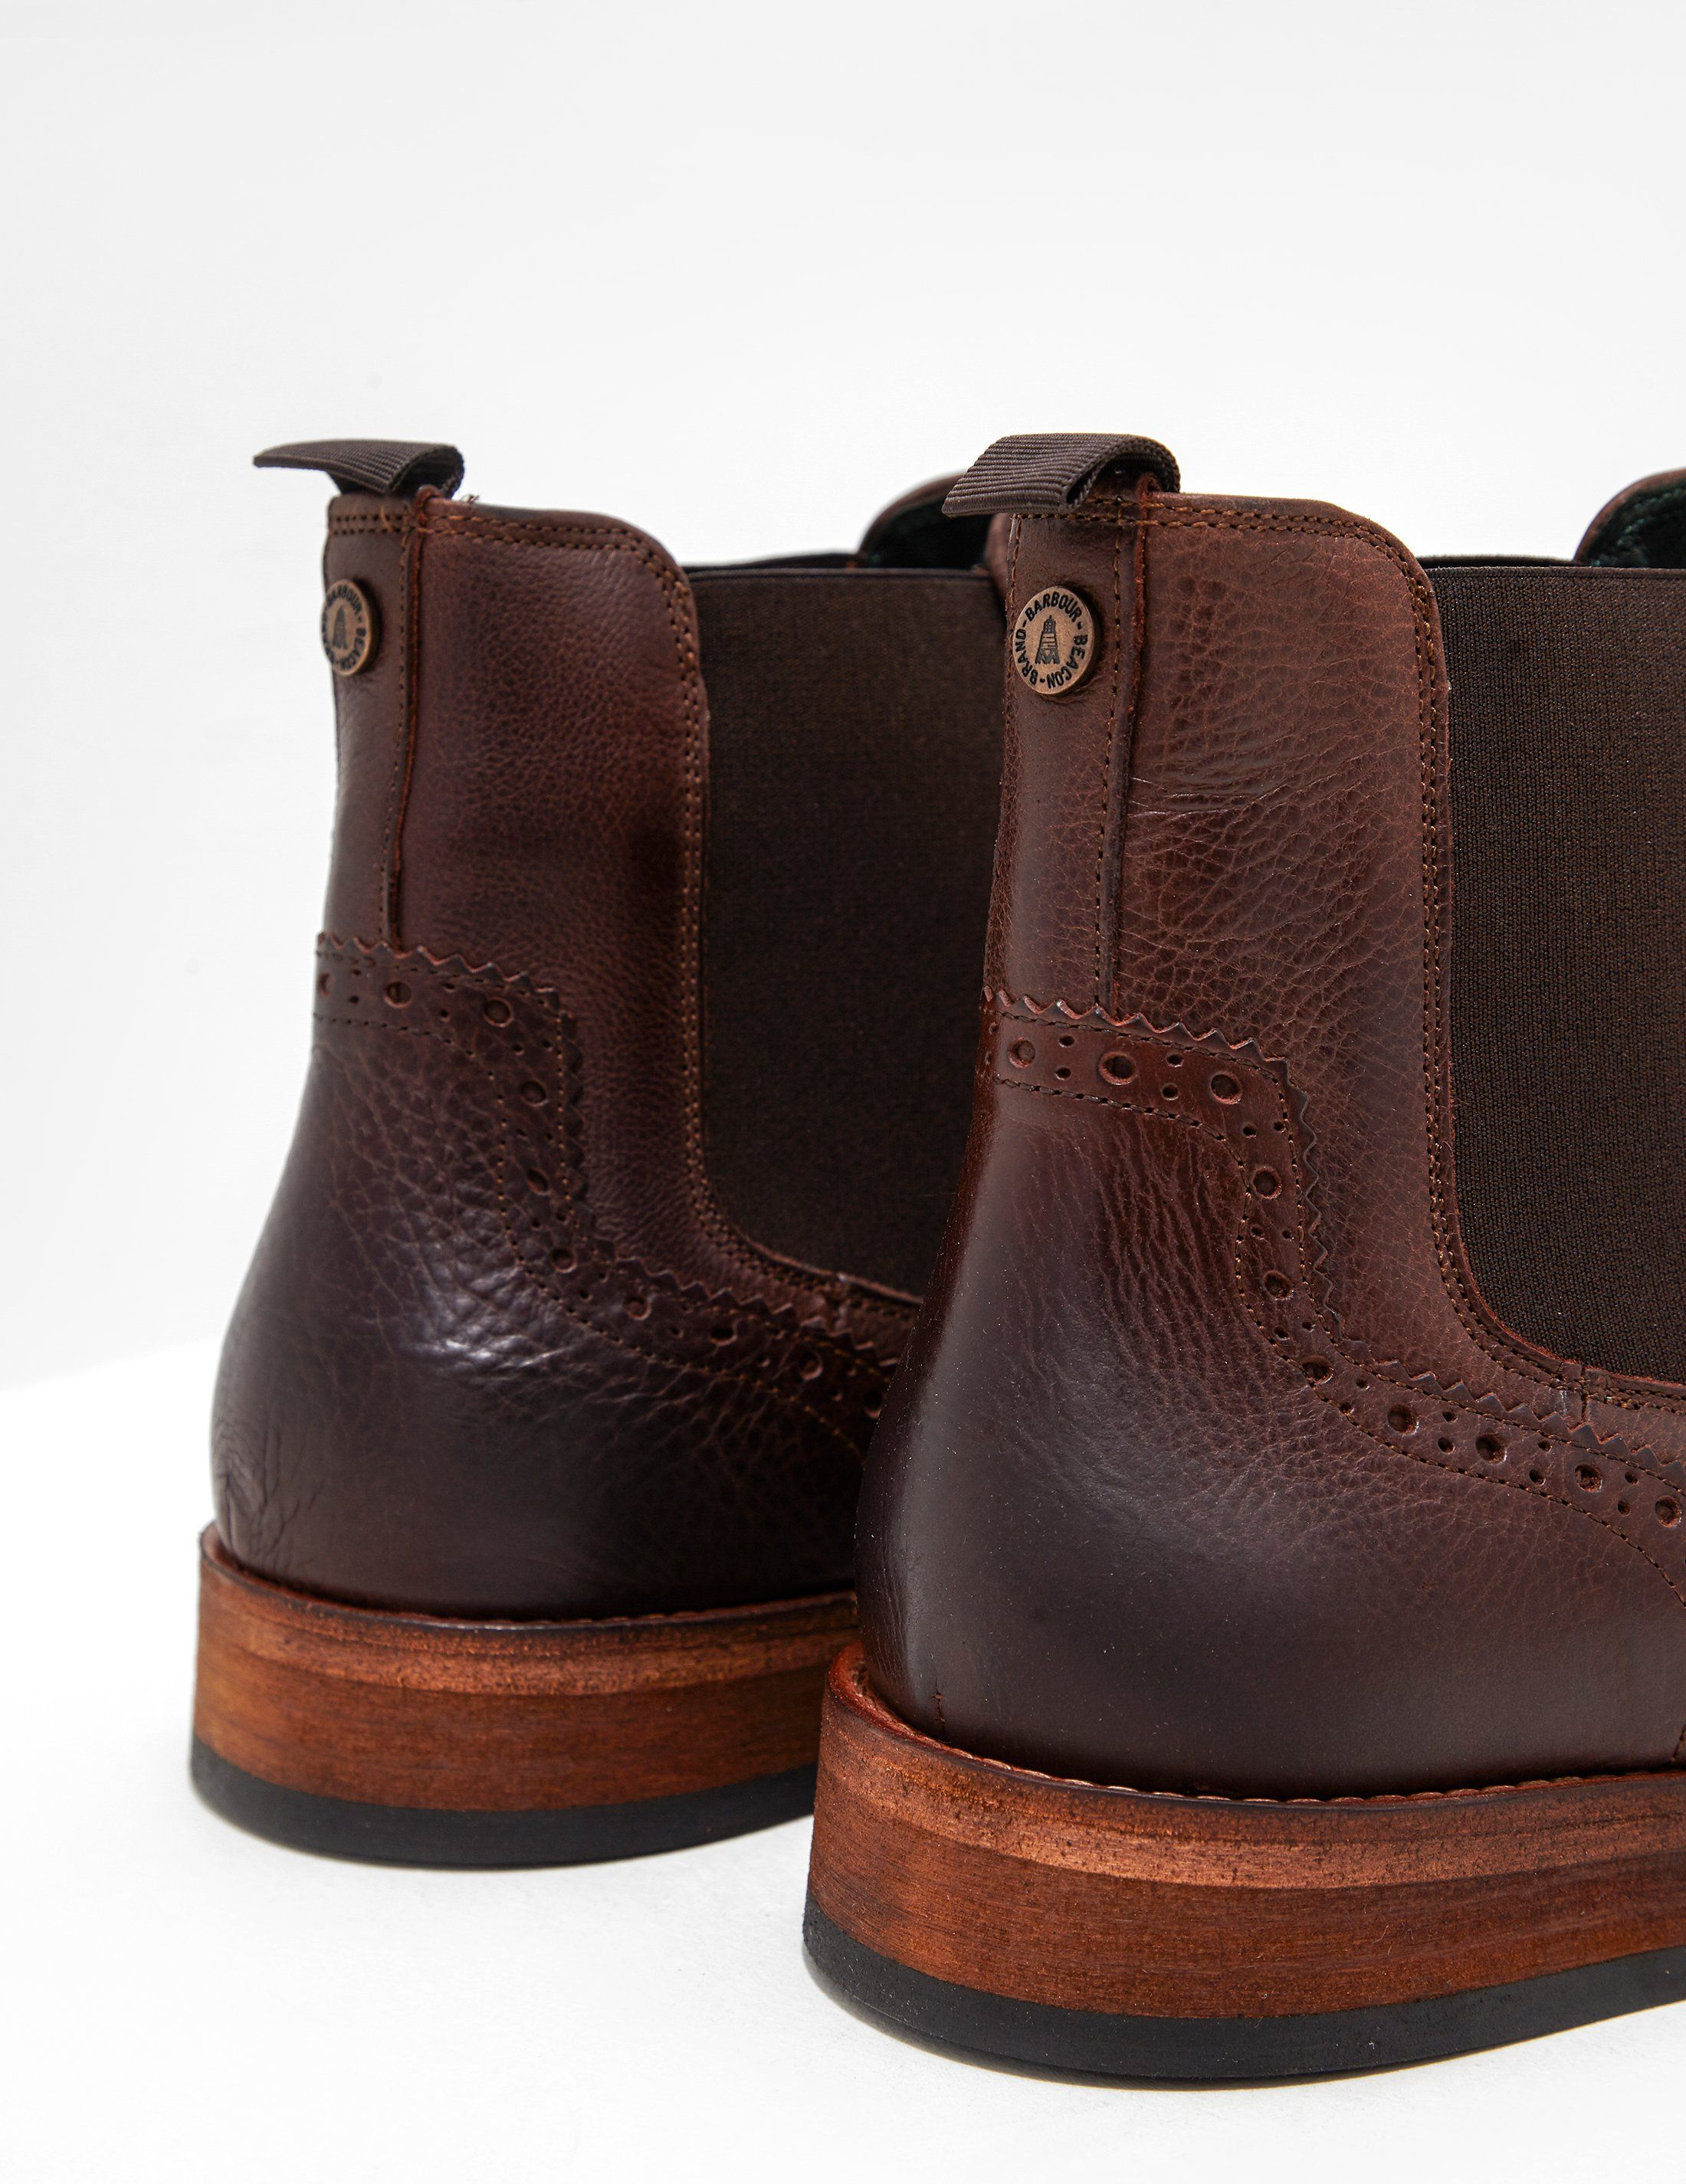 Barbour Raunds Chelsea Boots - Online Exclusive